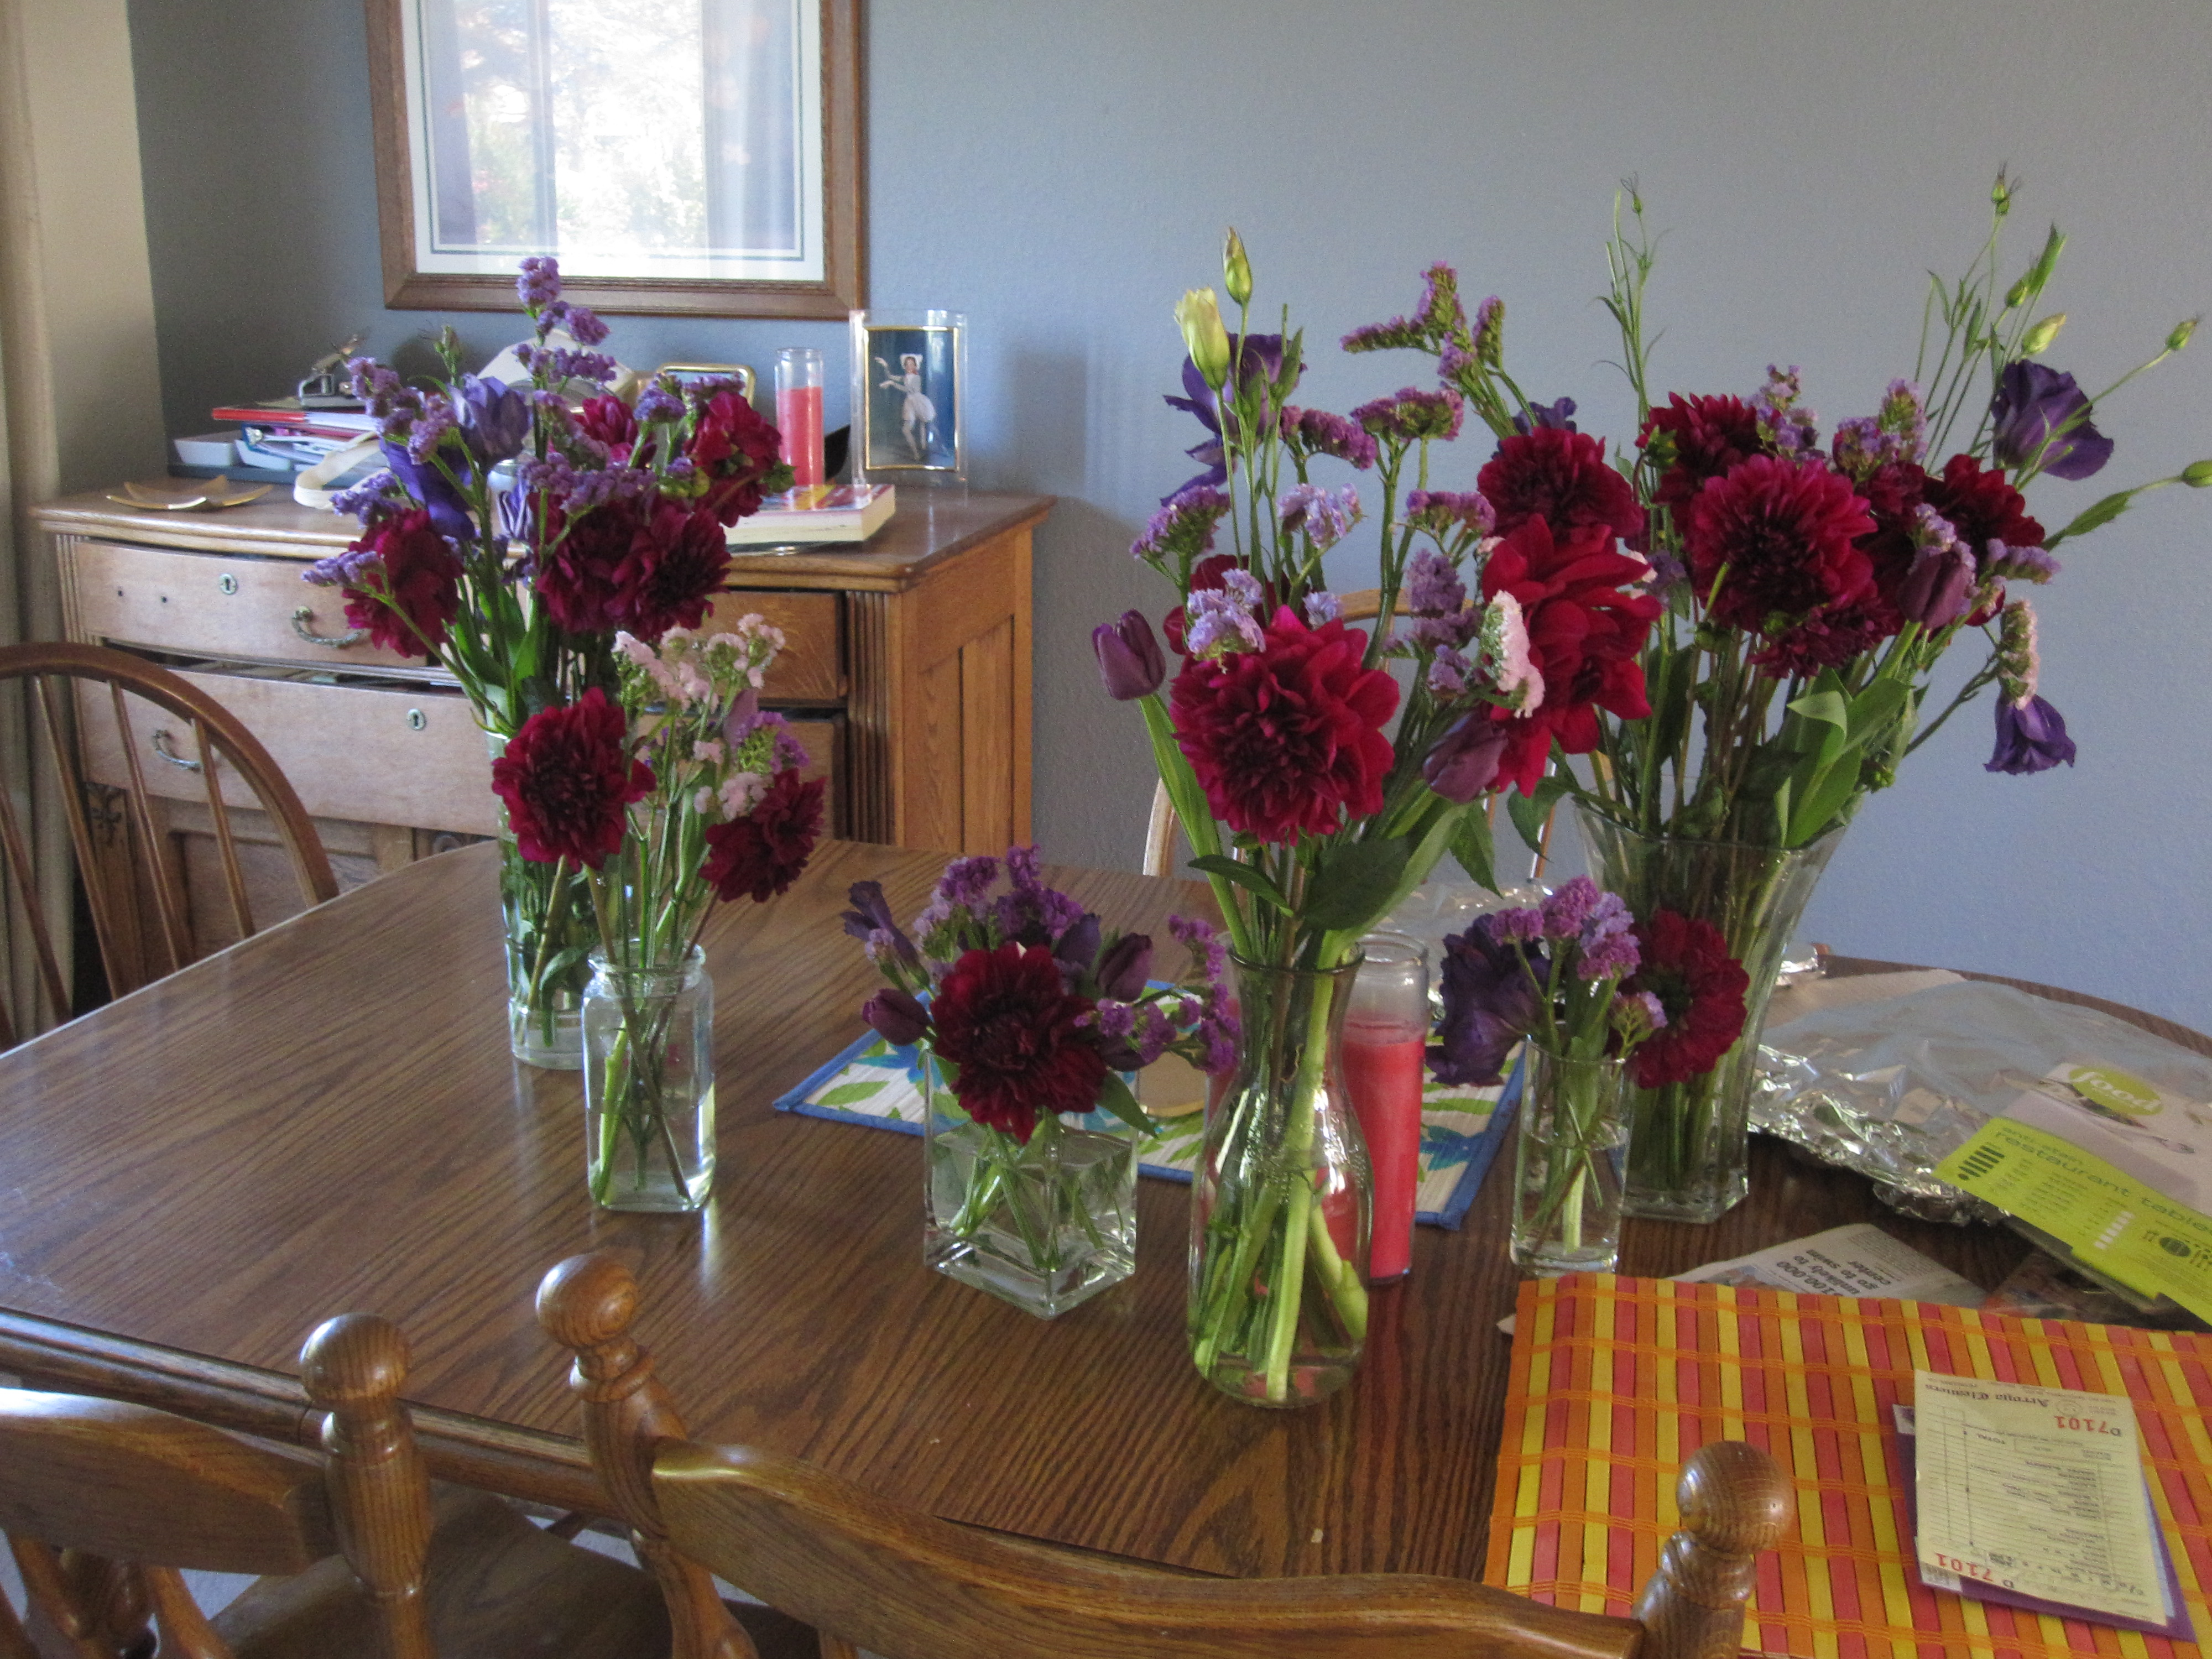 I purchased a bunch of flowers at the Flower Mart the day before the party. We arranged them at my house on Friday afternoon.